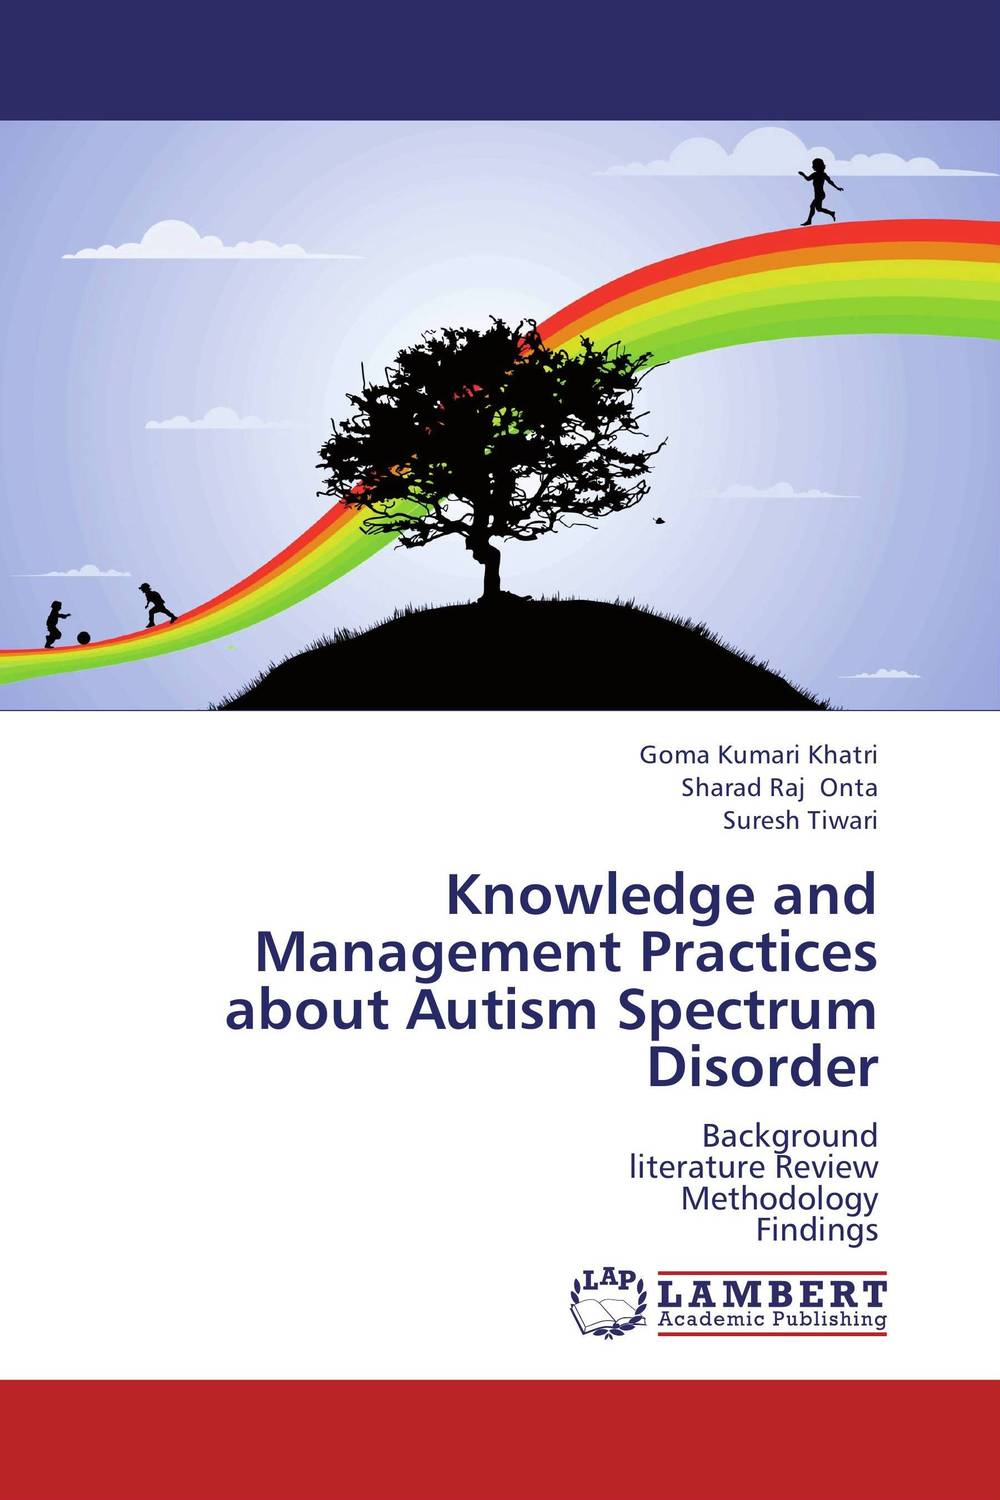 Knowledge and Management Practices about Autism Spectrum Disorder temporomandibular disorder